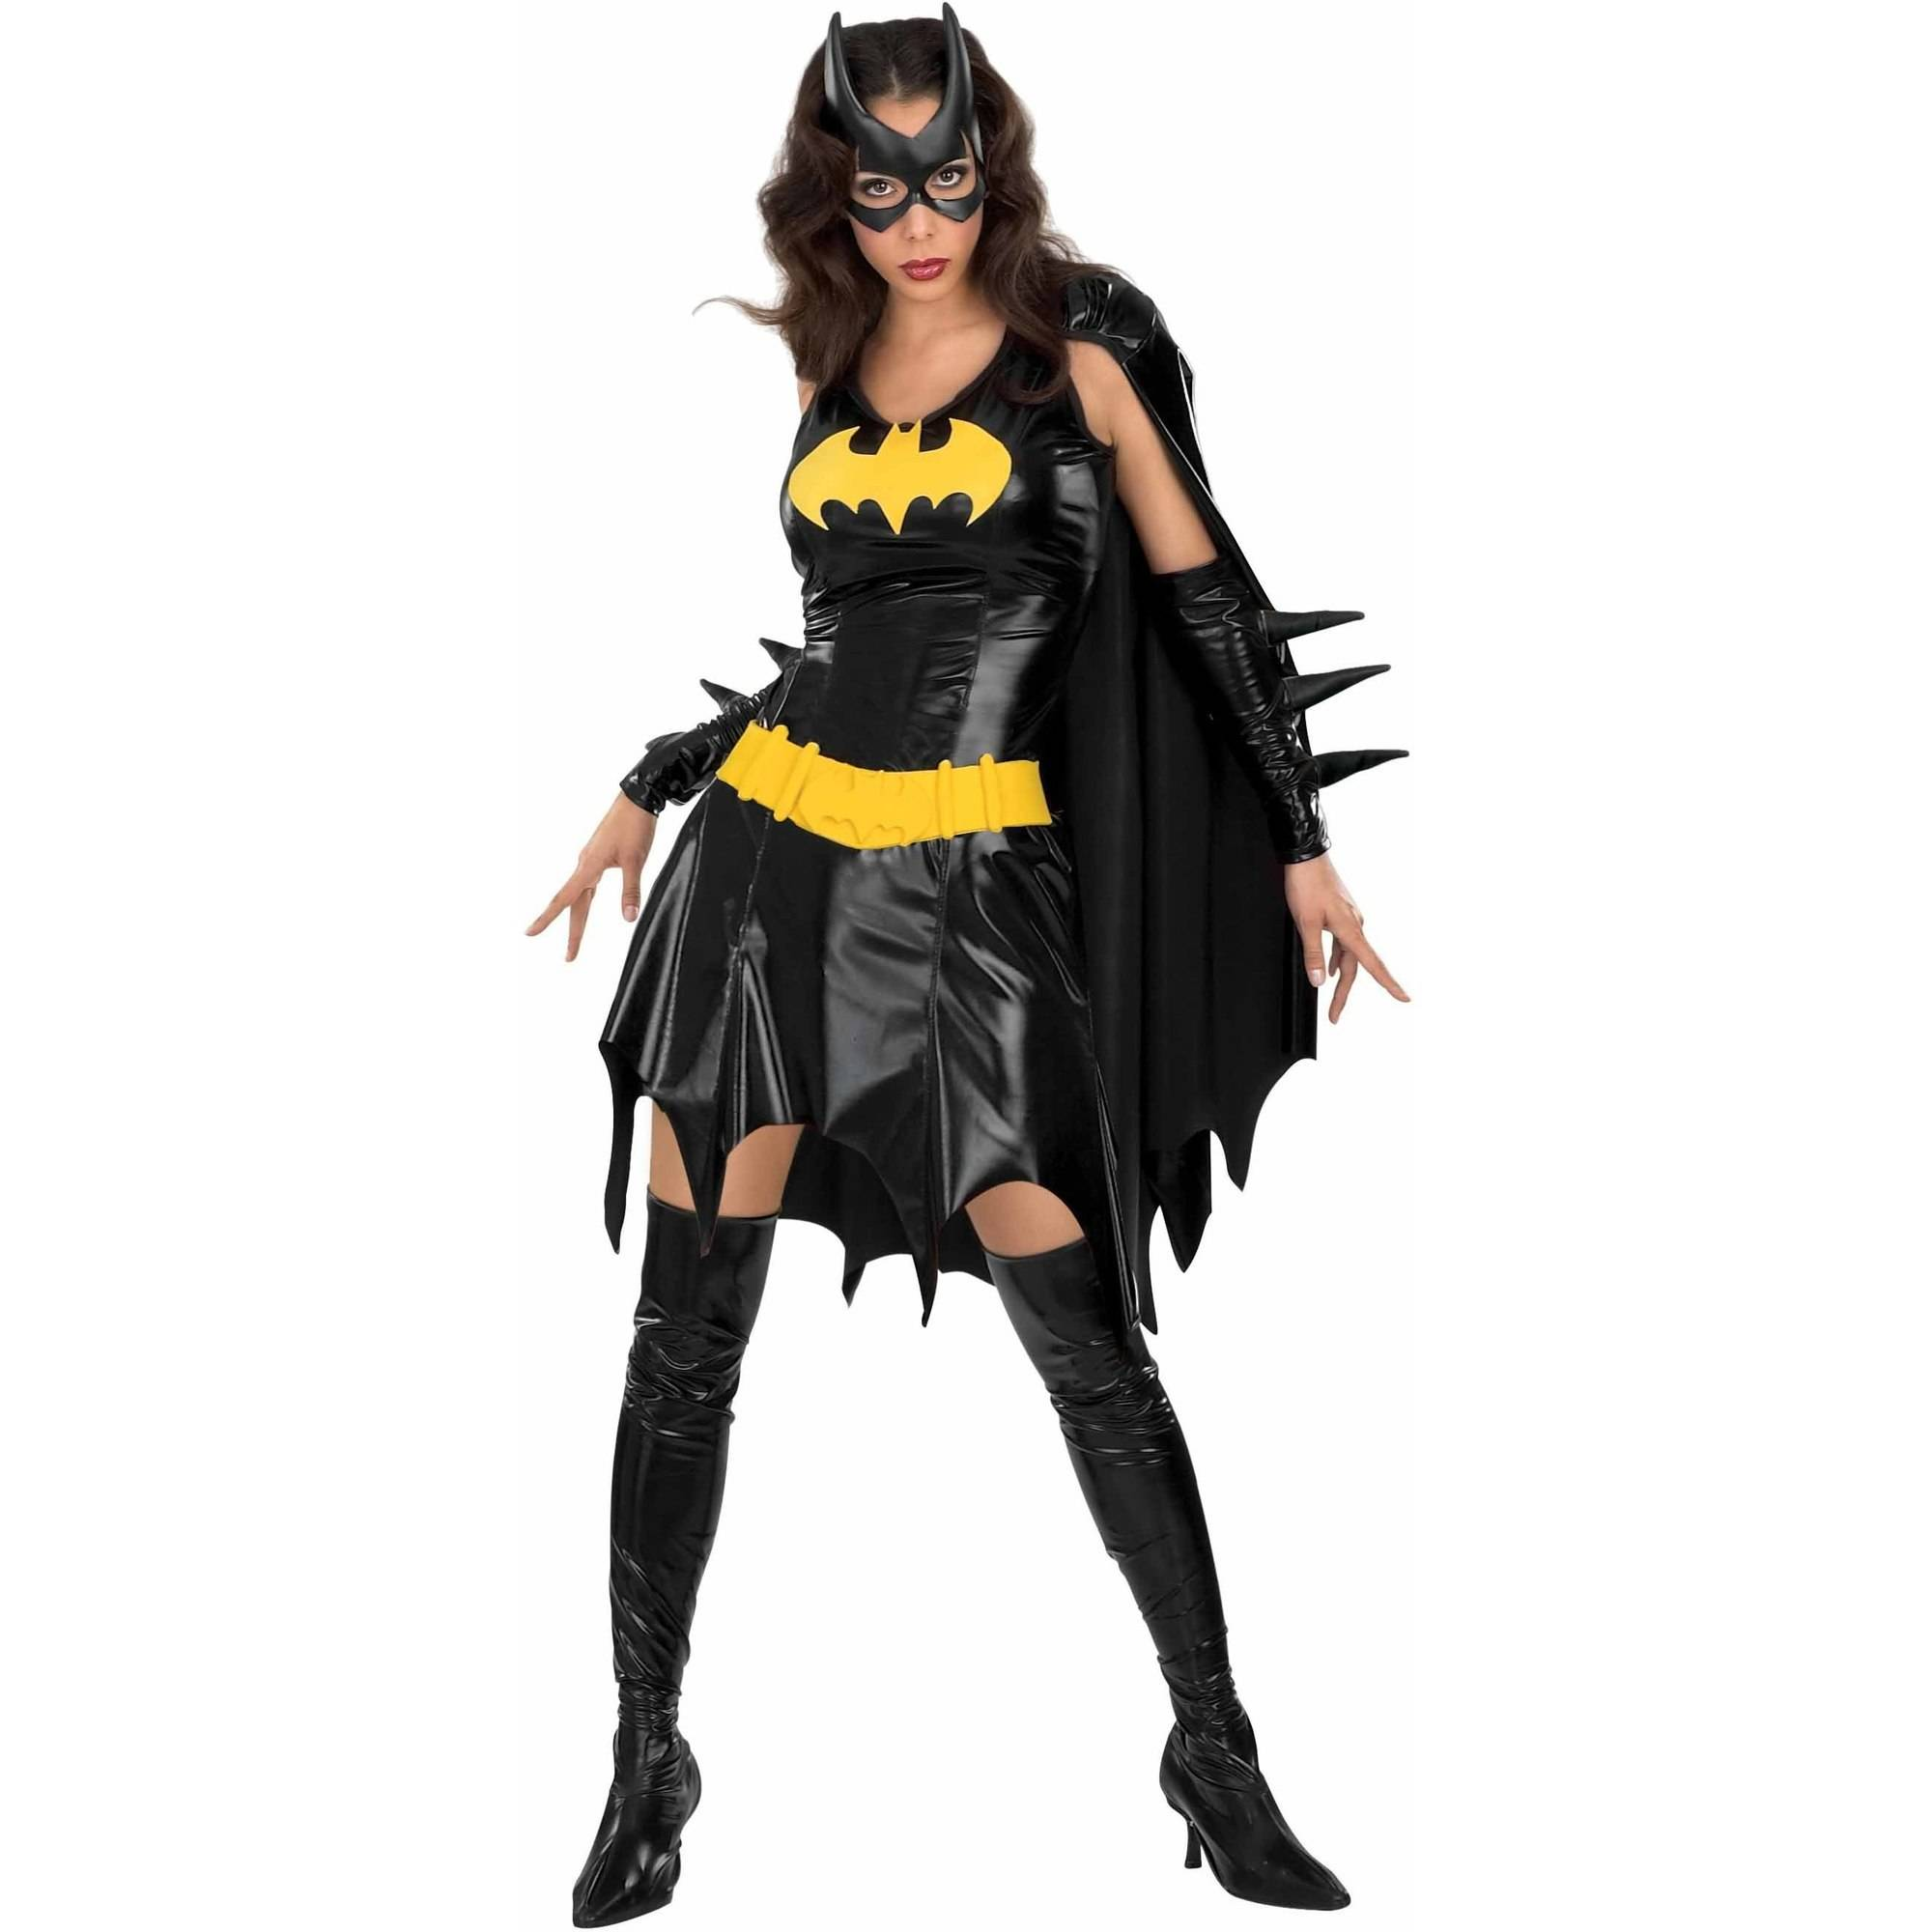 Deluxe Batgirl Adult Costume, Small (4-6)